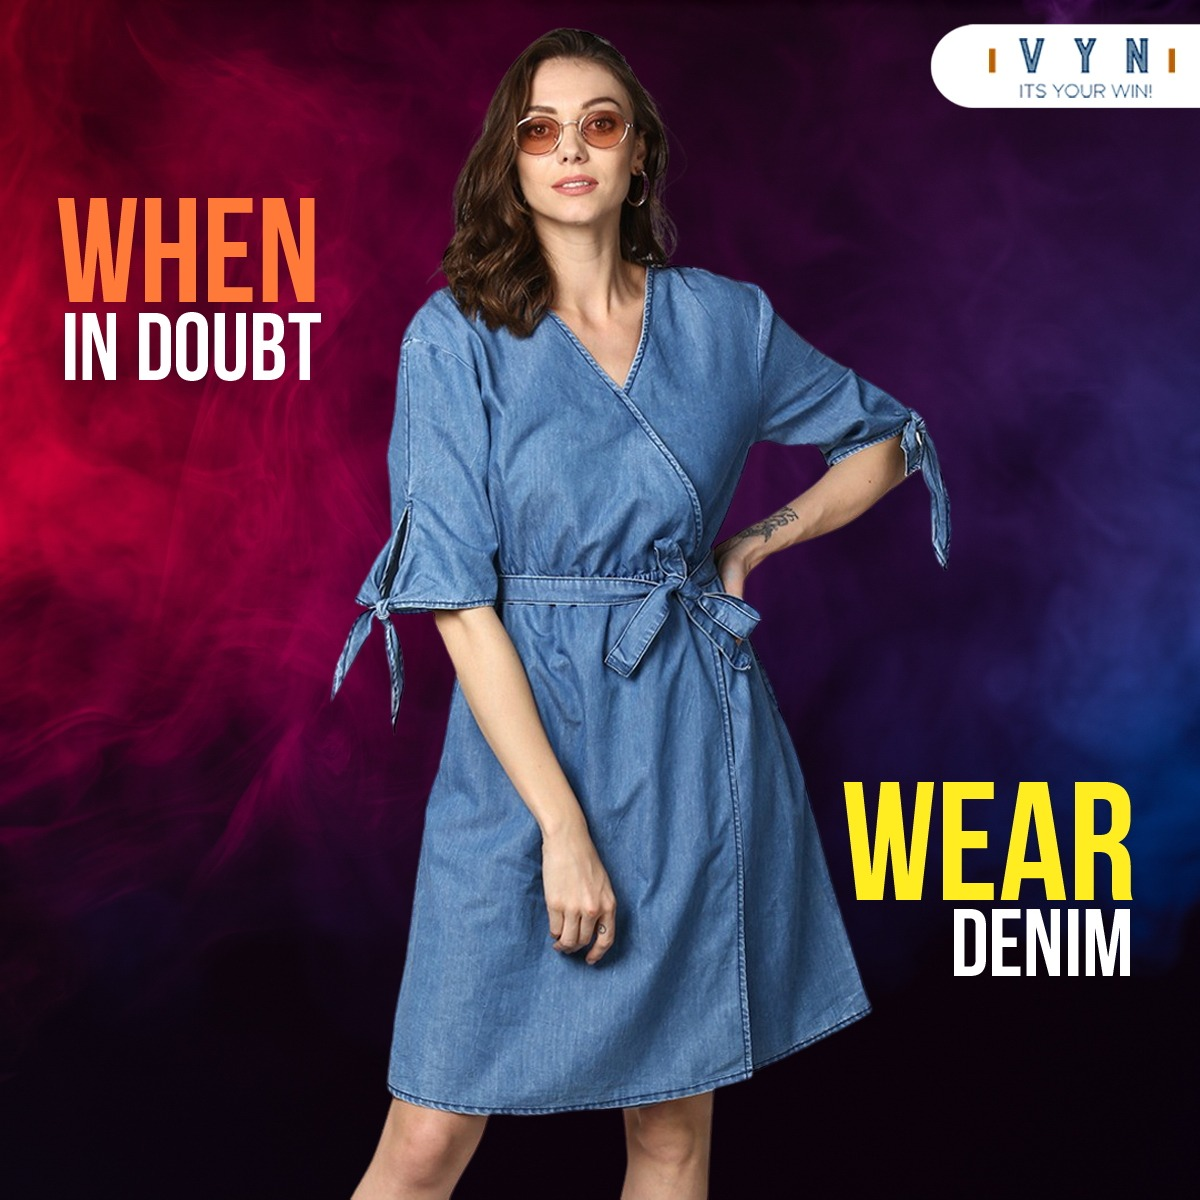 Understated, uncomplicated and unbelievably versatile - denim dresses can take you smoothly in style through the season. . . . #VYN #VYNFashion #VYNClothing #denim #jeans #fashion #style #ootd #denimjacket #vintage #love #moda #outfit #fashionblogger #instafashion #onlineshopping https://t.co/hNPocBJ4RZ